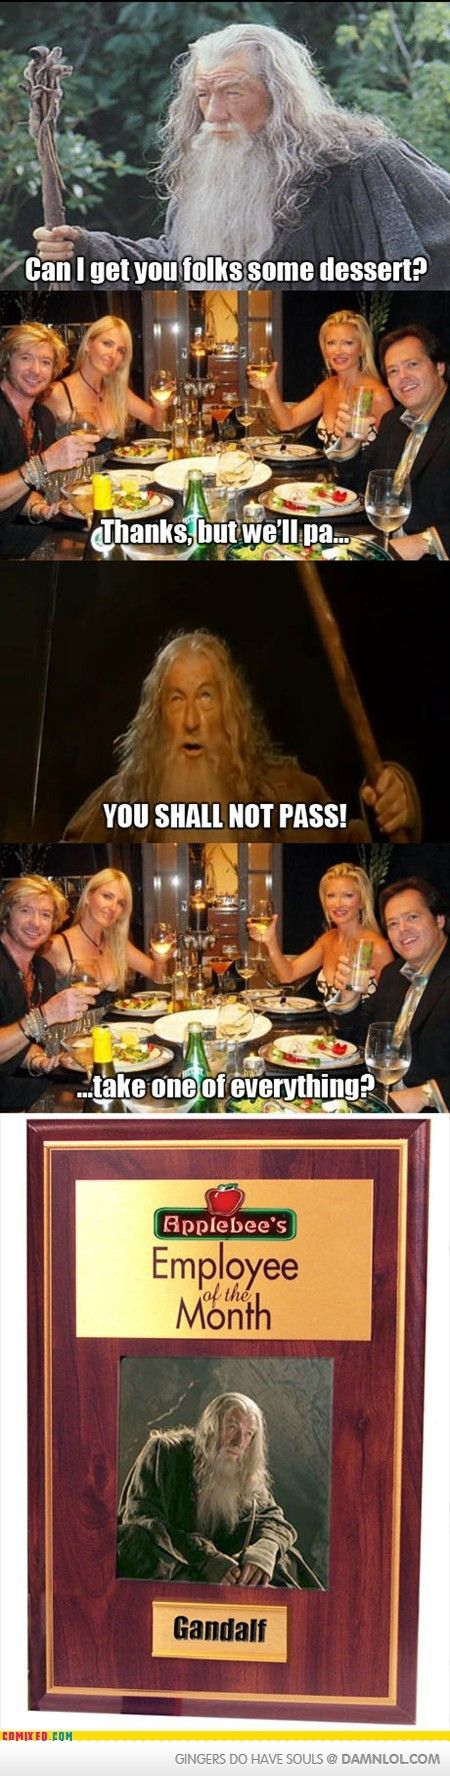 If Gandalf was a waiter...  Secures job like a boss!